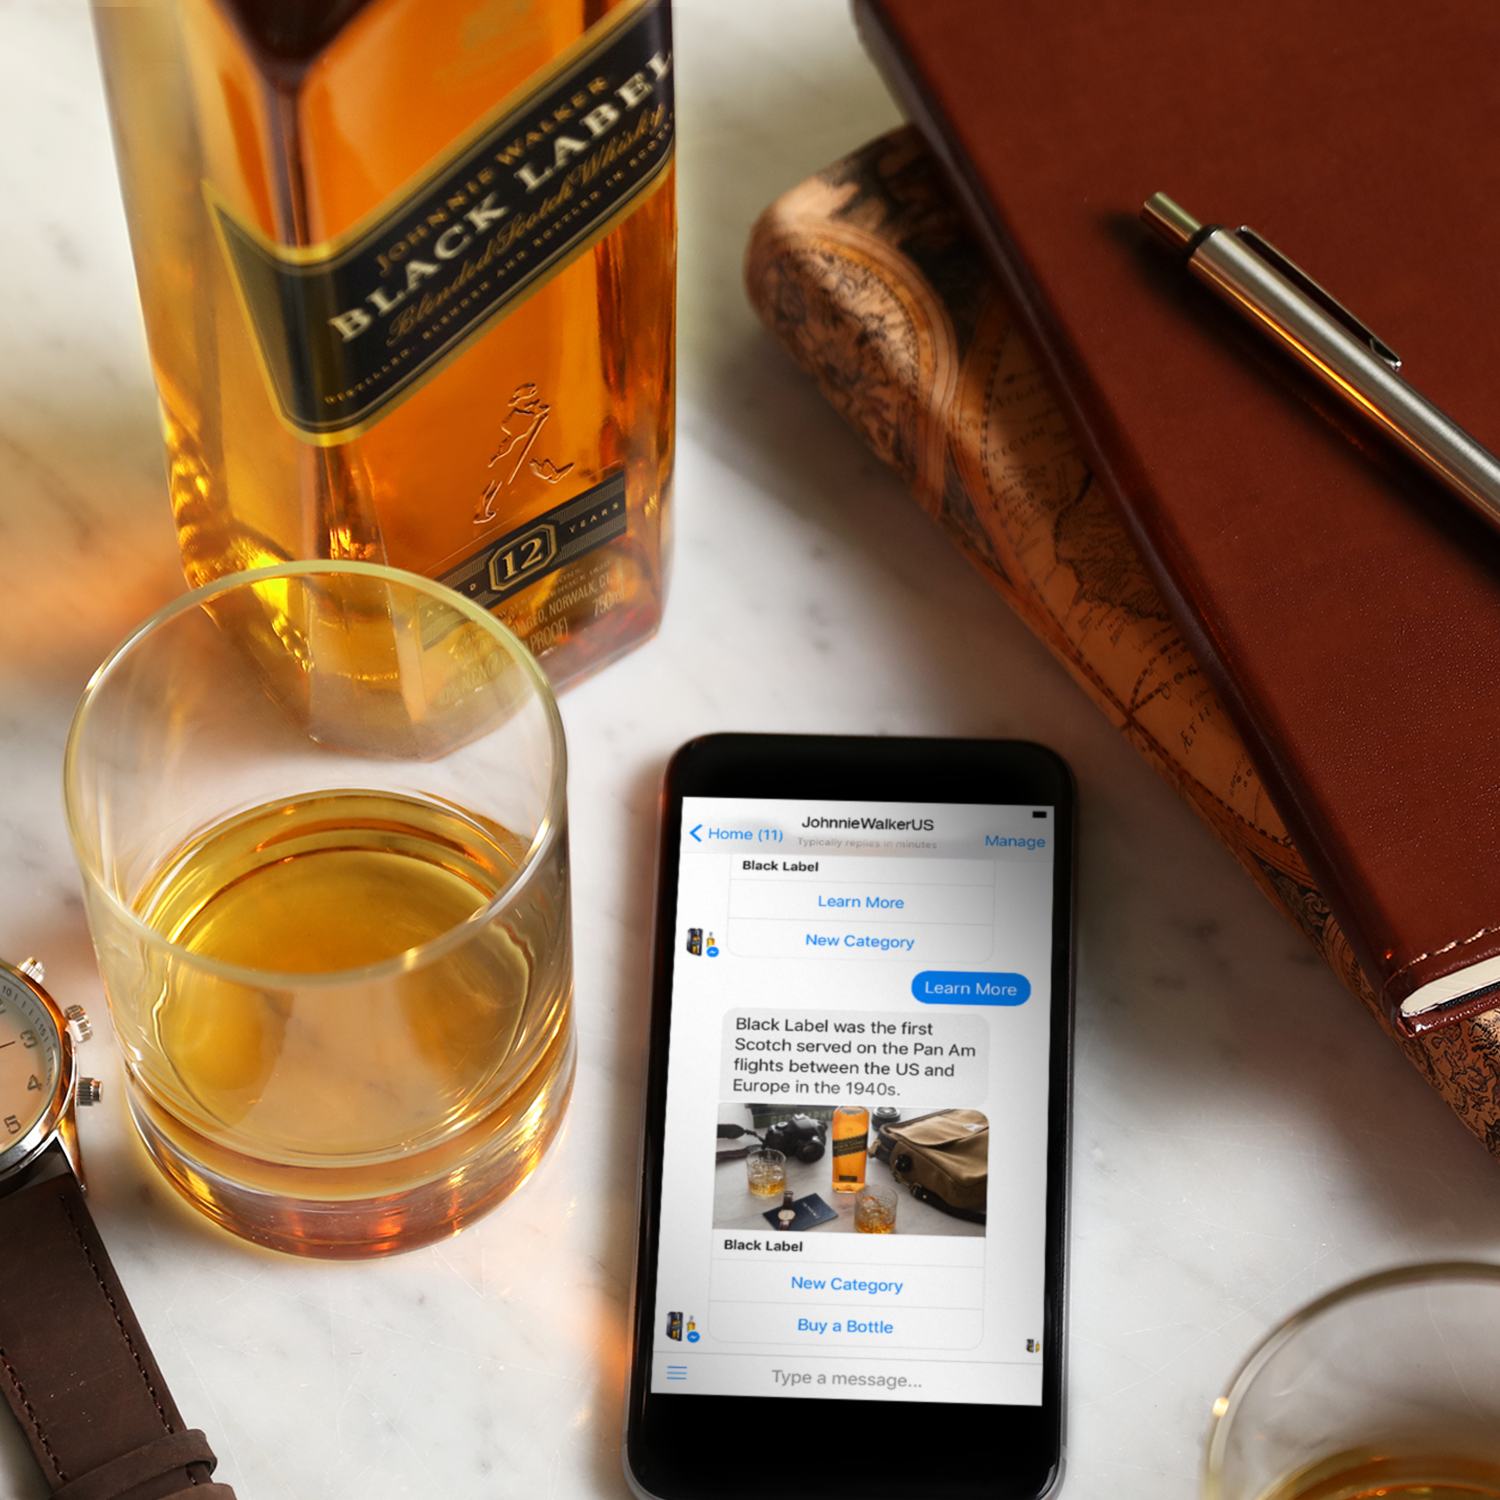 Johnnie Walker launches a bot for Messenger bringing whisky tasting and education to your fingertips